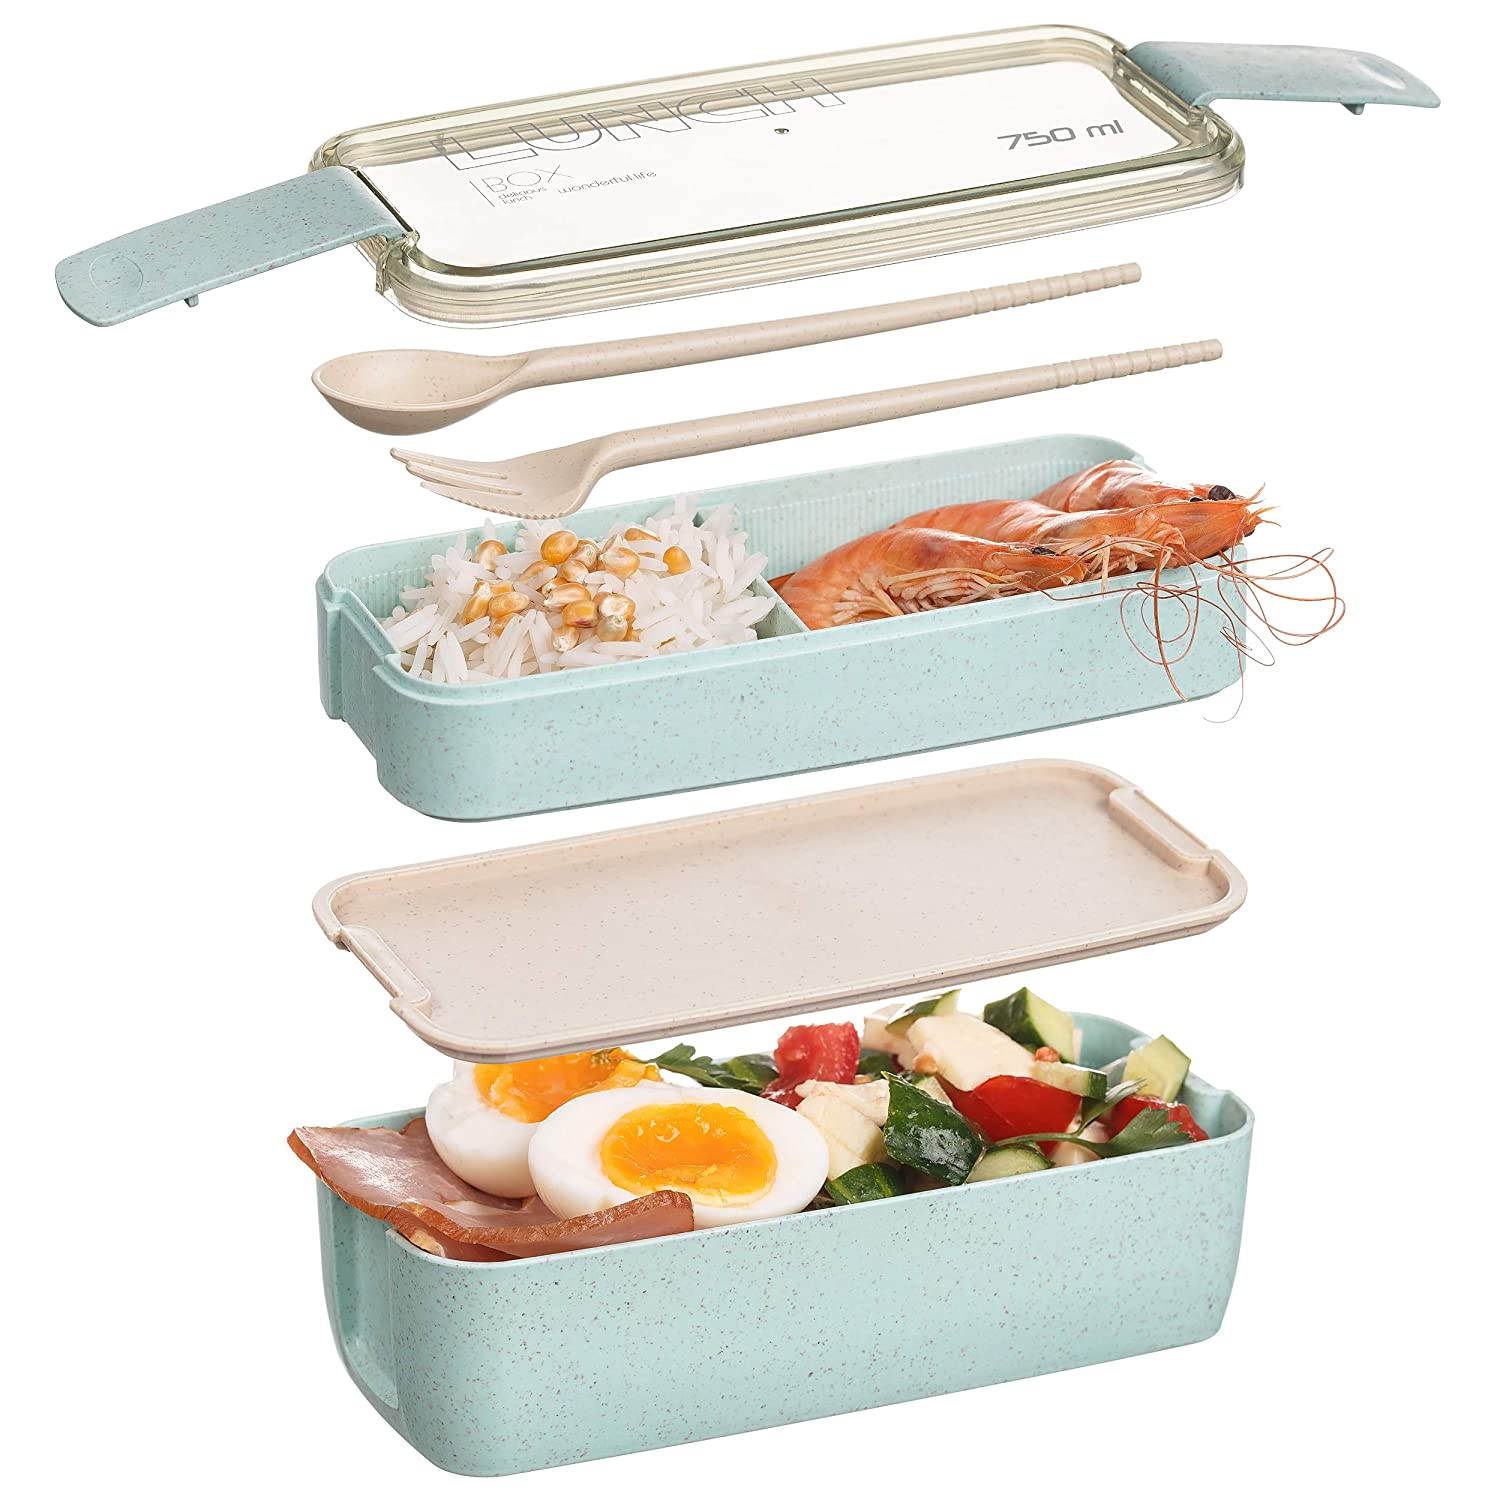 The All-in-one Lunch Bento Box -Two Stackable Meal Prep Kids Bento Box- Dishwasher Safe,Utensils,Dividers-Food Storage Containers